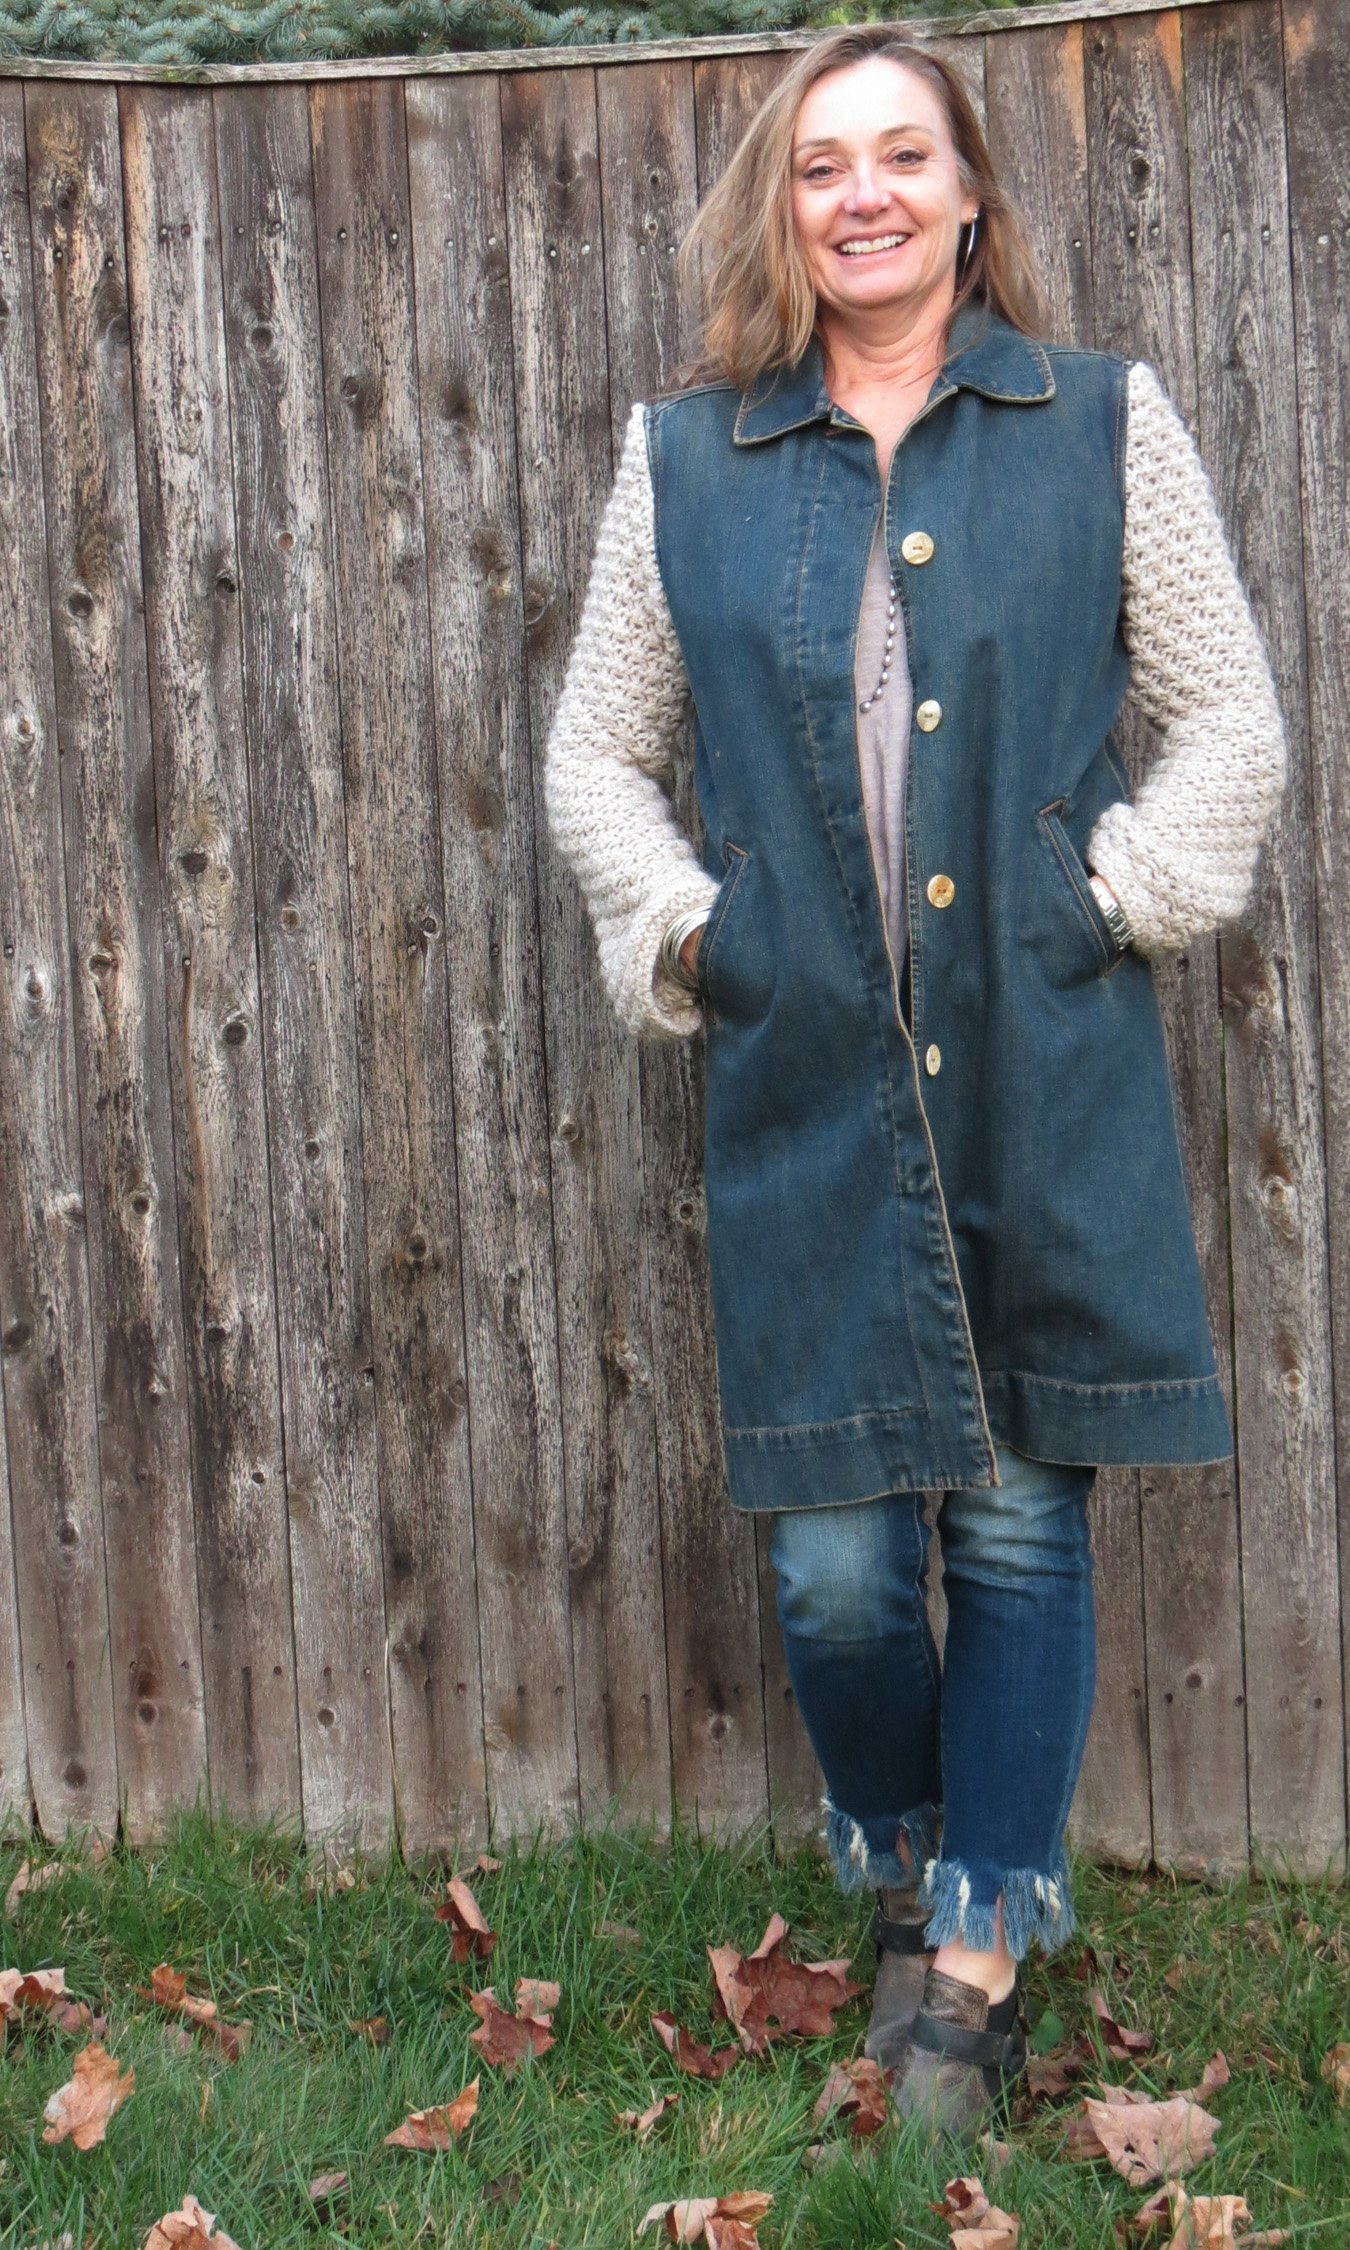 Champagne Kotted Knit Sleeved Mixed Media Dark Denim Trench Coat